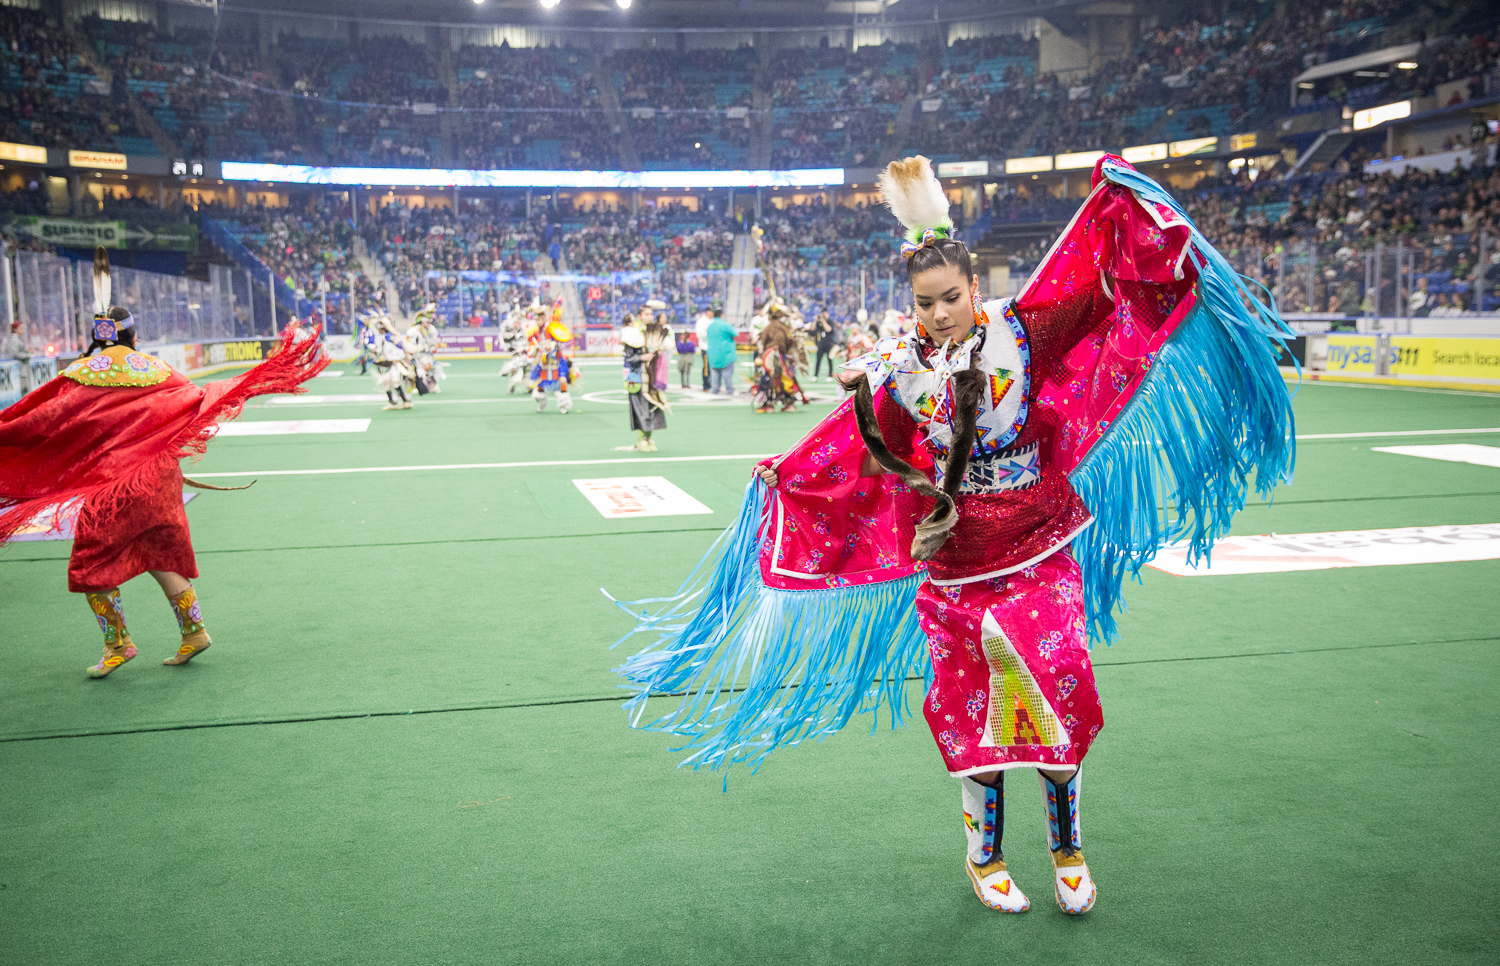 Indigenous dancers, drummers, and singers from the Saskatoon Public School Division took over the field at half time to perform and beautifully showcase another aspect of Canadian Culture.